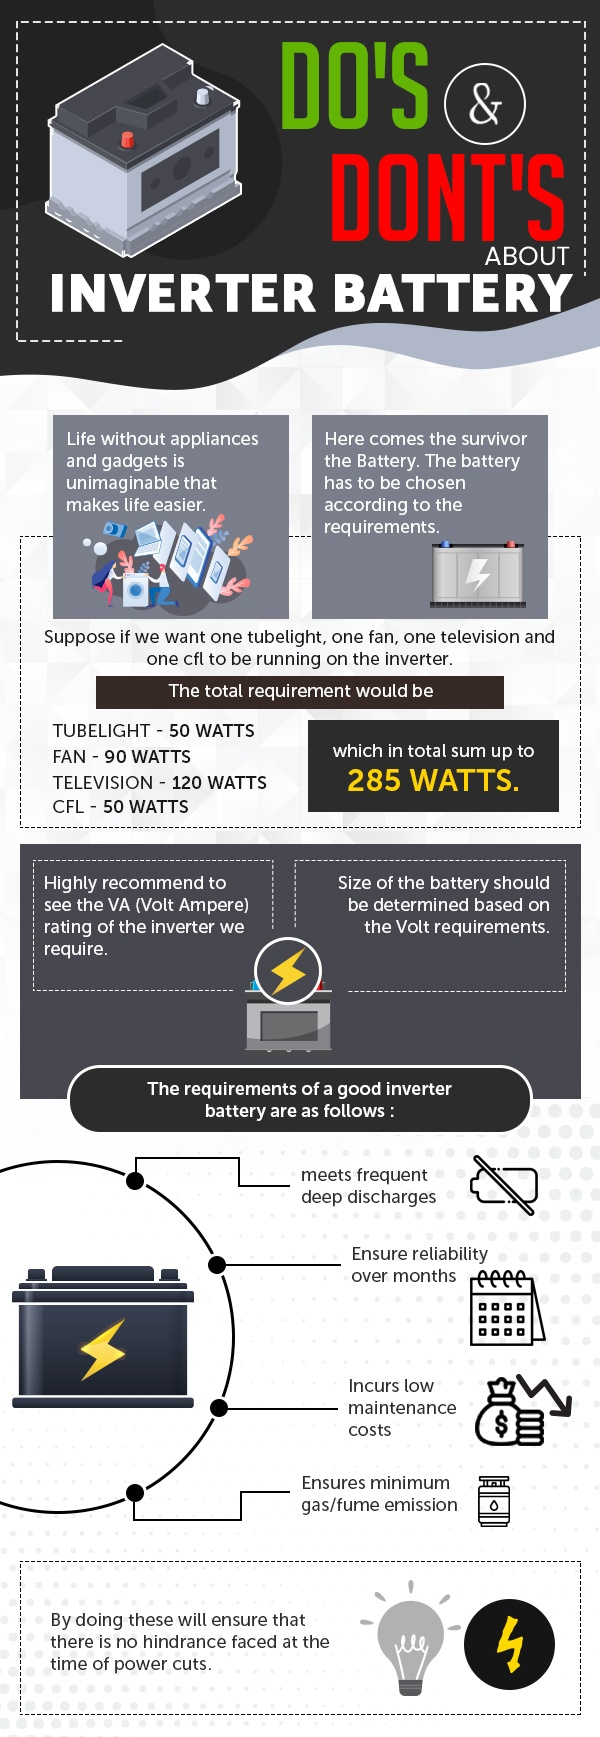 Do's And Don'ts Of An Inverter Battery!